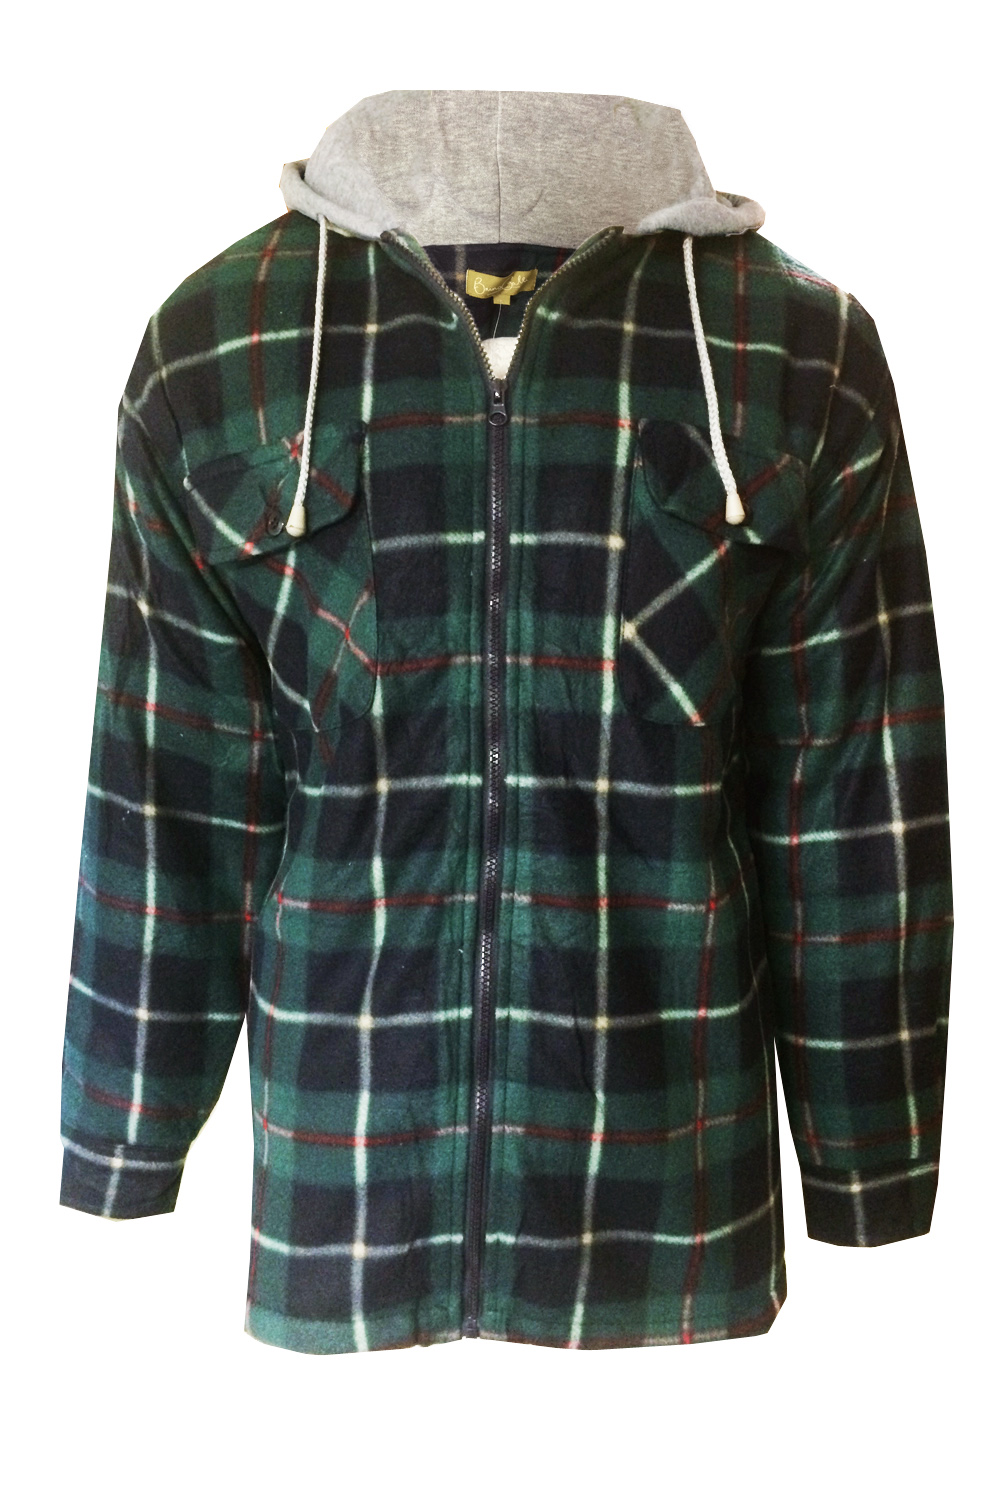 Mens Check Lumberjack Jacket Fleece Lined Flannel Hooded